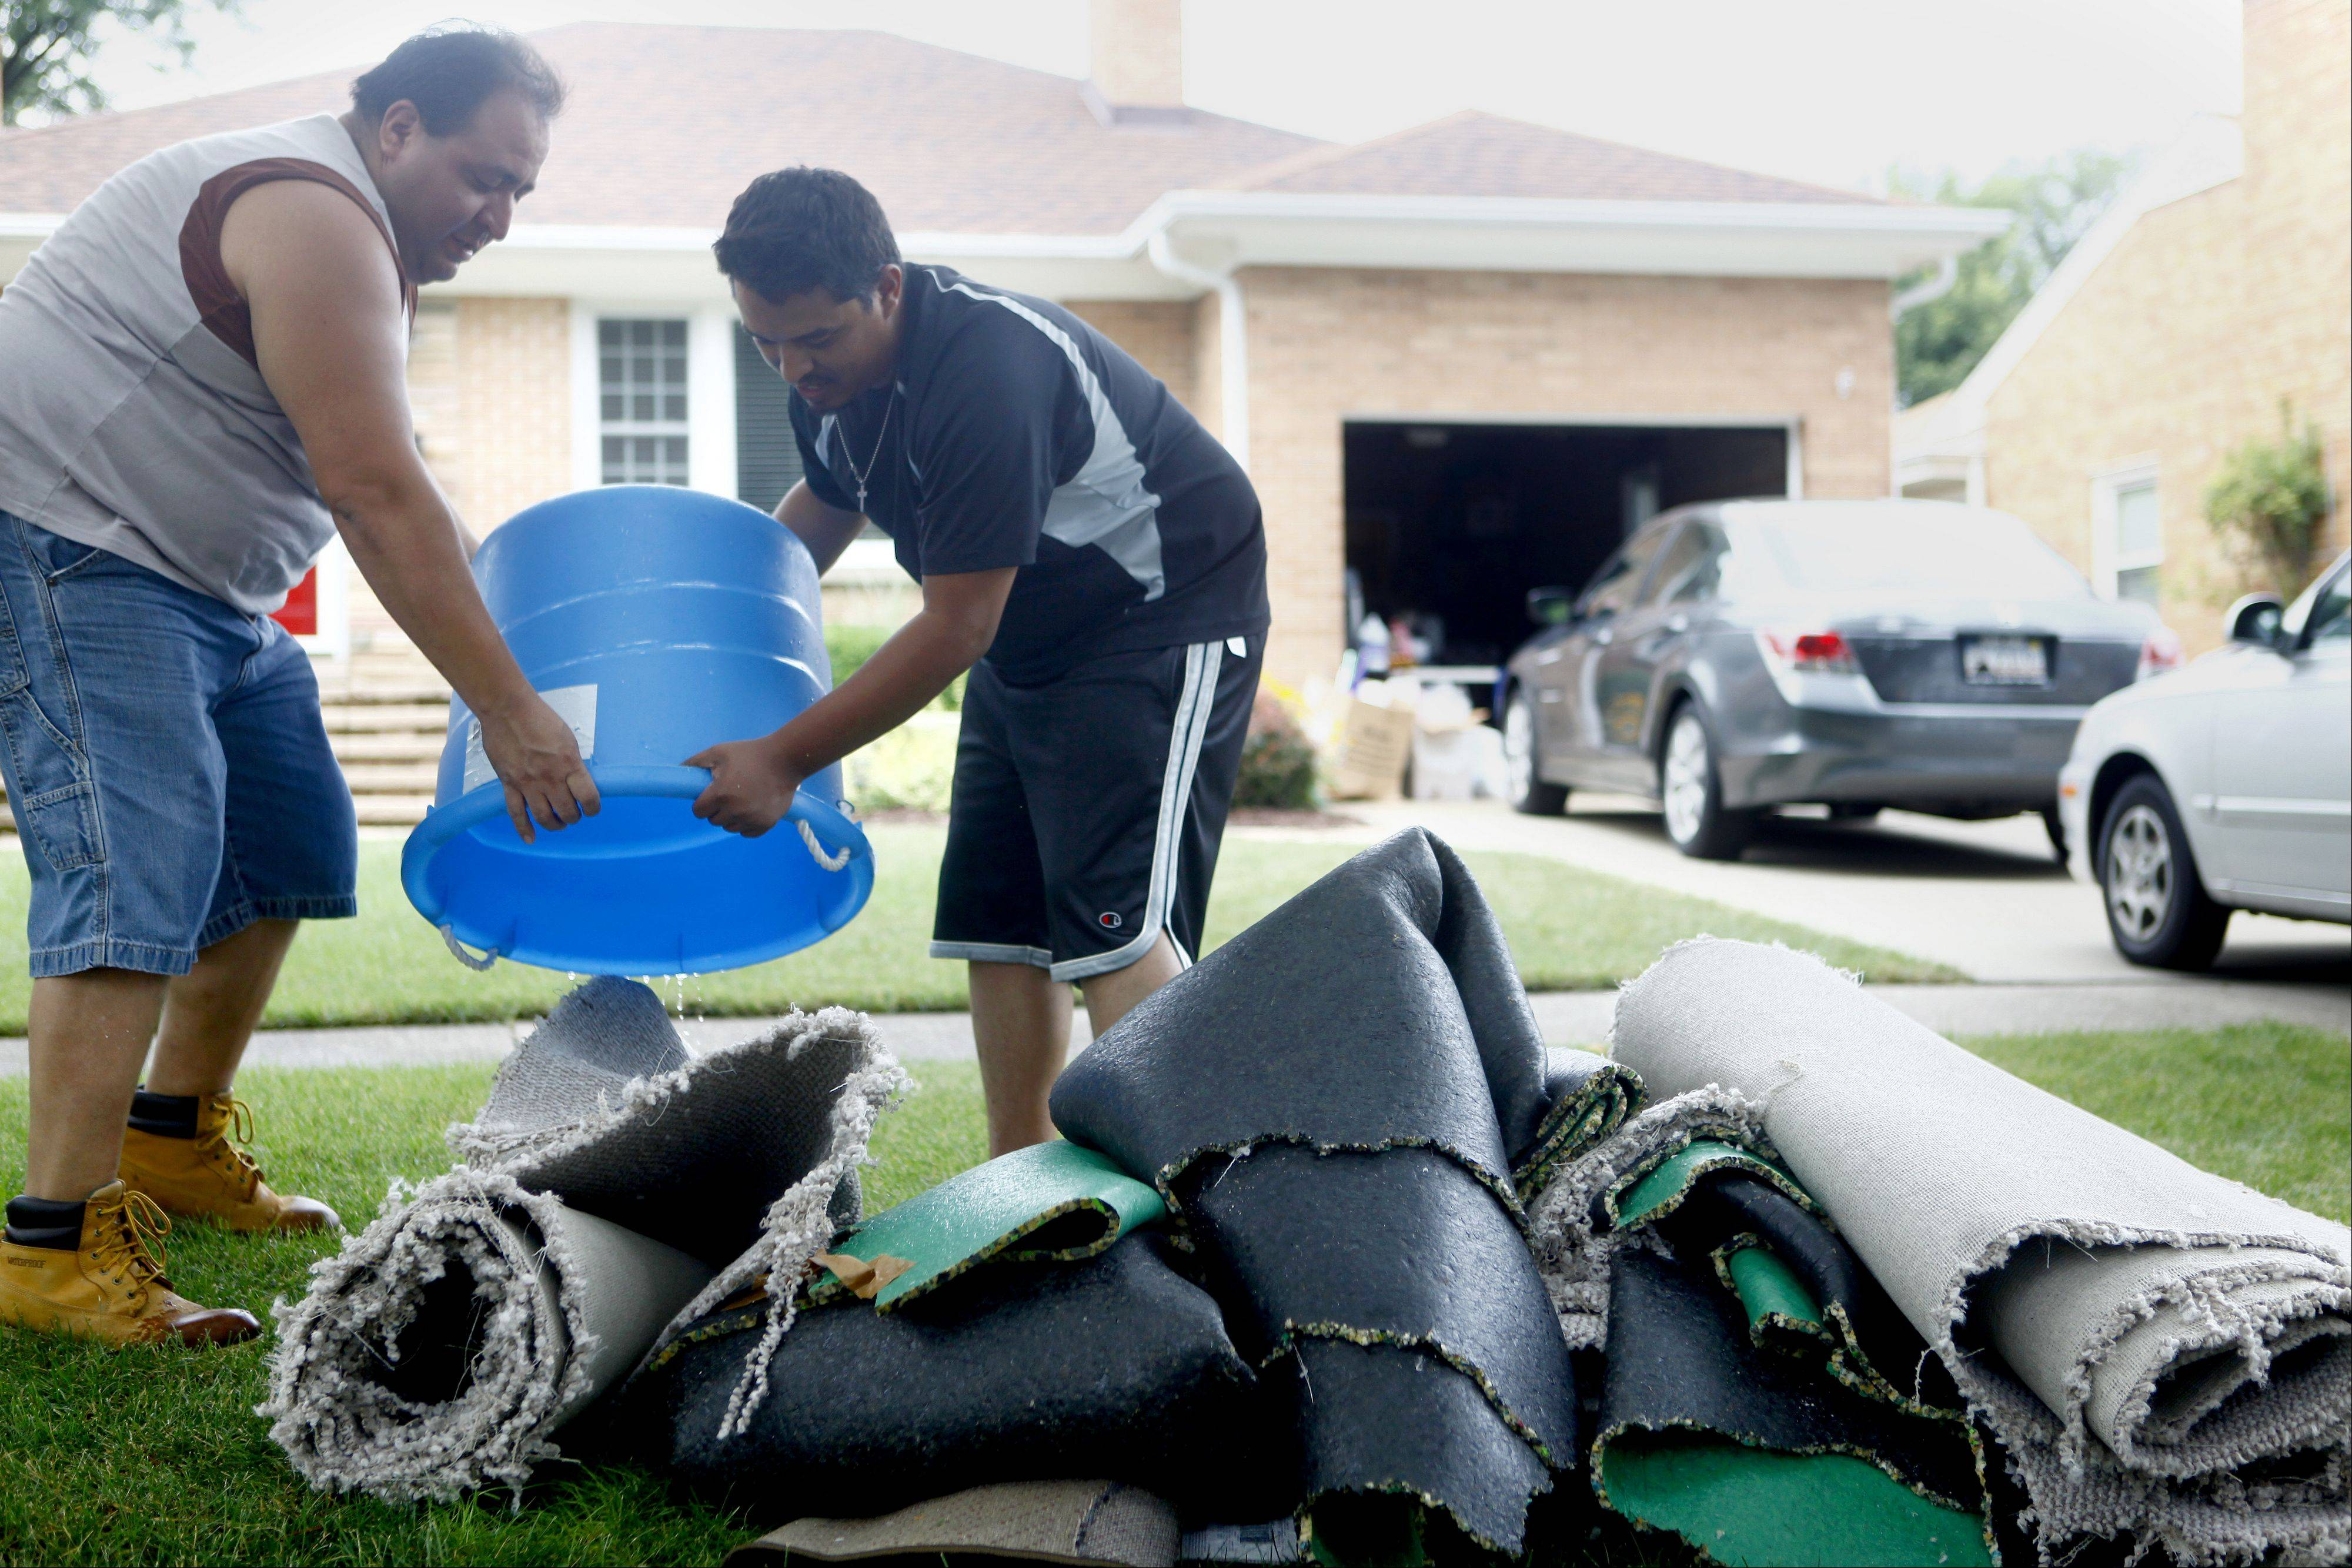 Mark Mesa, left, and Jorge Avina carry soaked possessions to the curb Saturday morning at Mesa's brother's house in Mount Prospect.